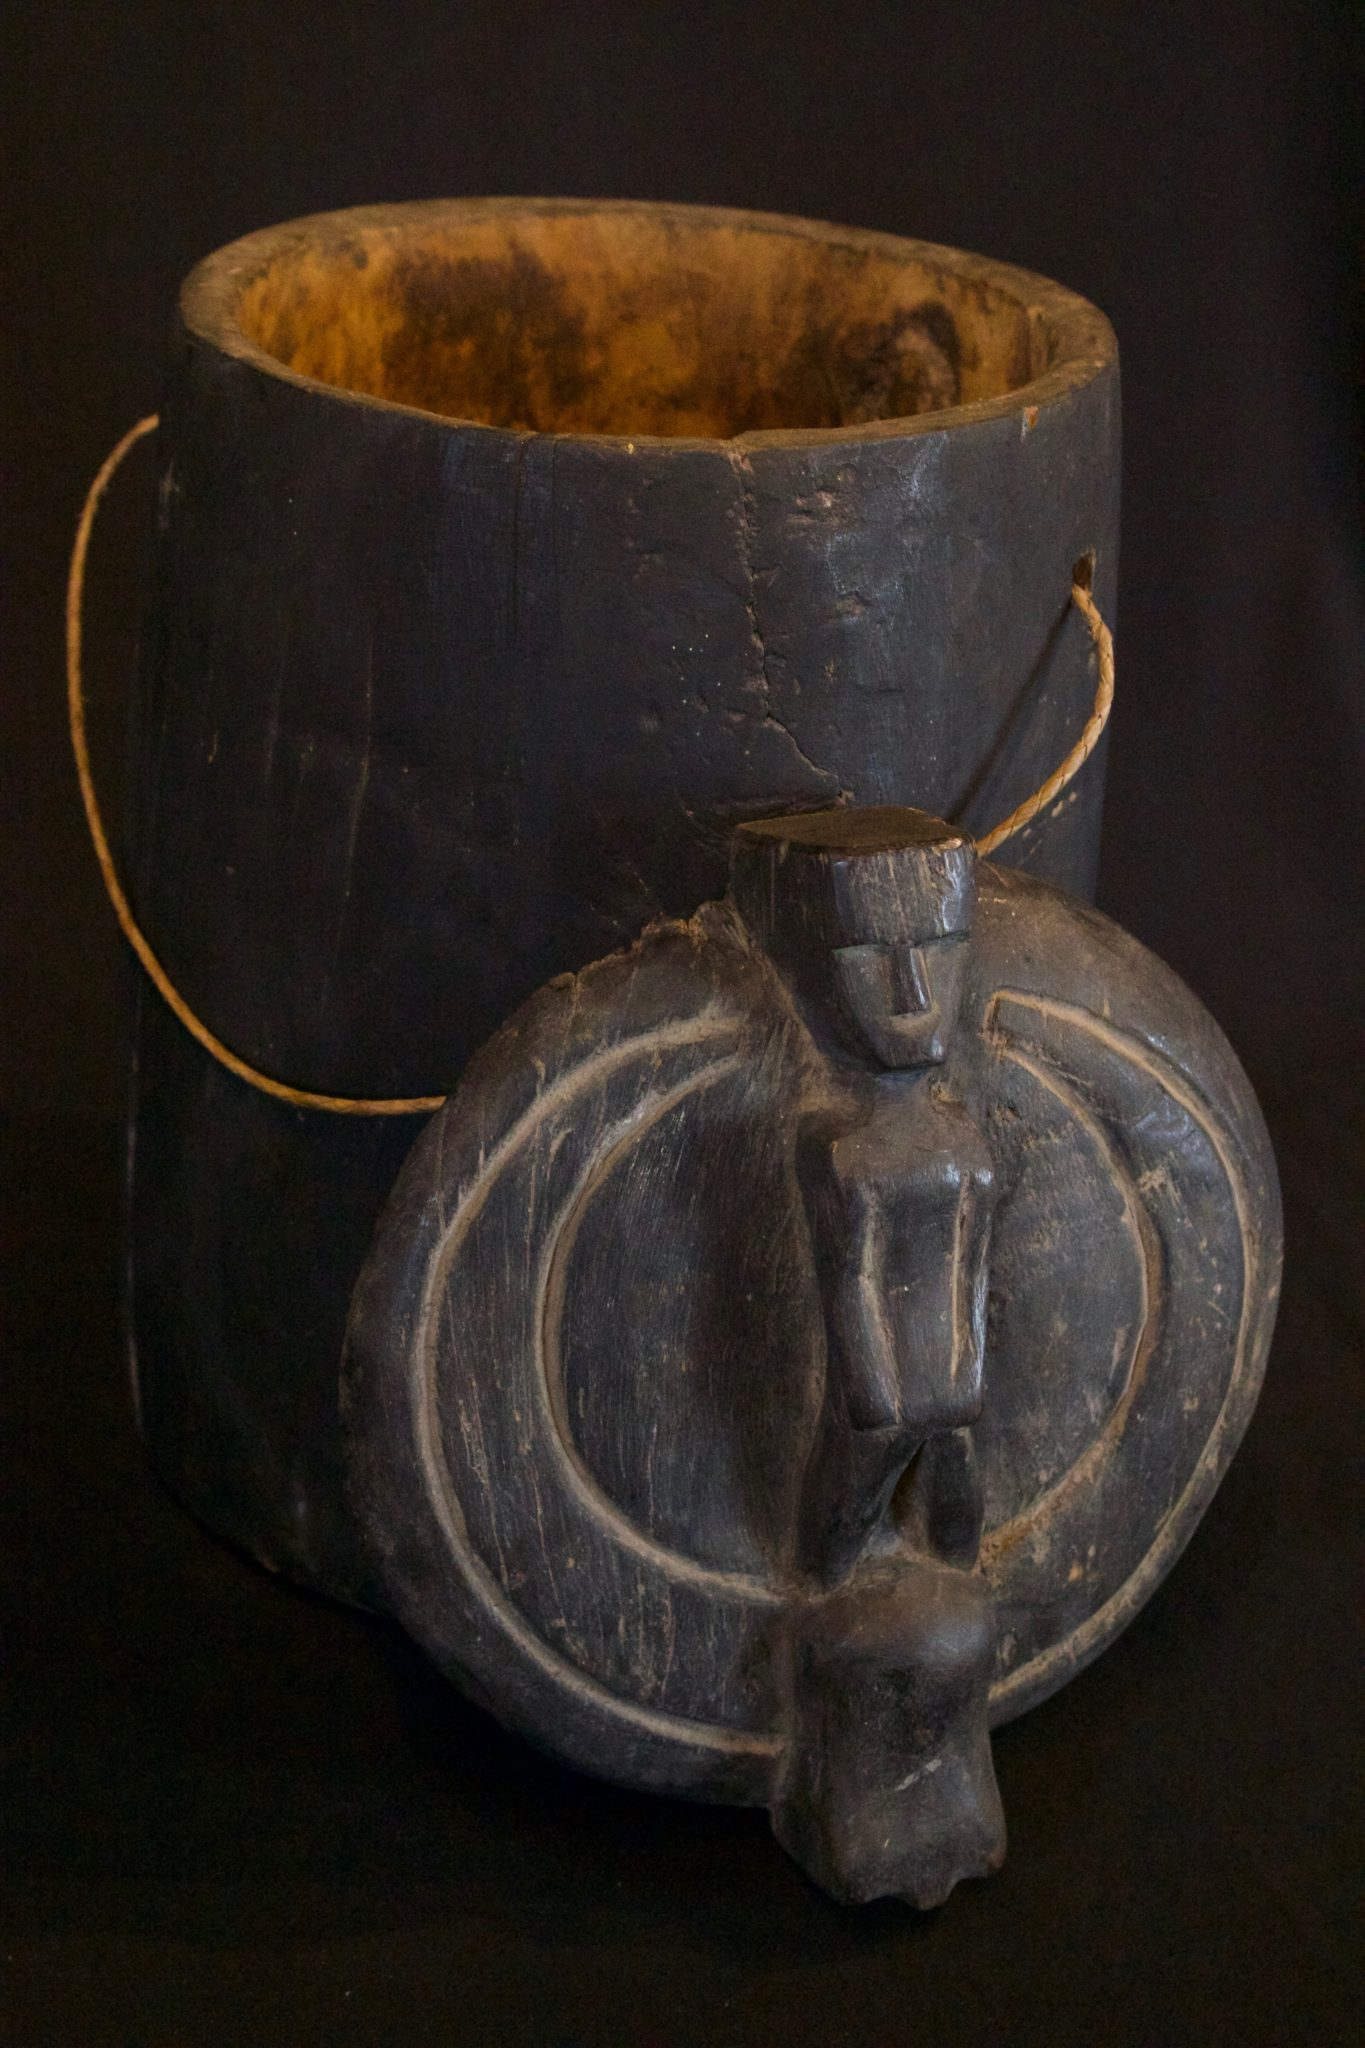 """Shaman's Medicine Box, Sulawesi, Indonesia, Toraja tribe, Early 20th c, Wood, patinated with use and age. Container for medicinal, herbs for healing. 14 ¼"""" x 9 ¼"""" x 8"""", $290."""